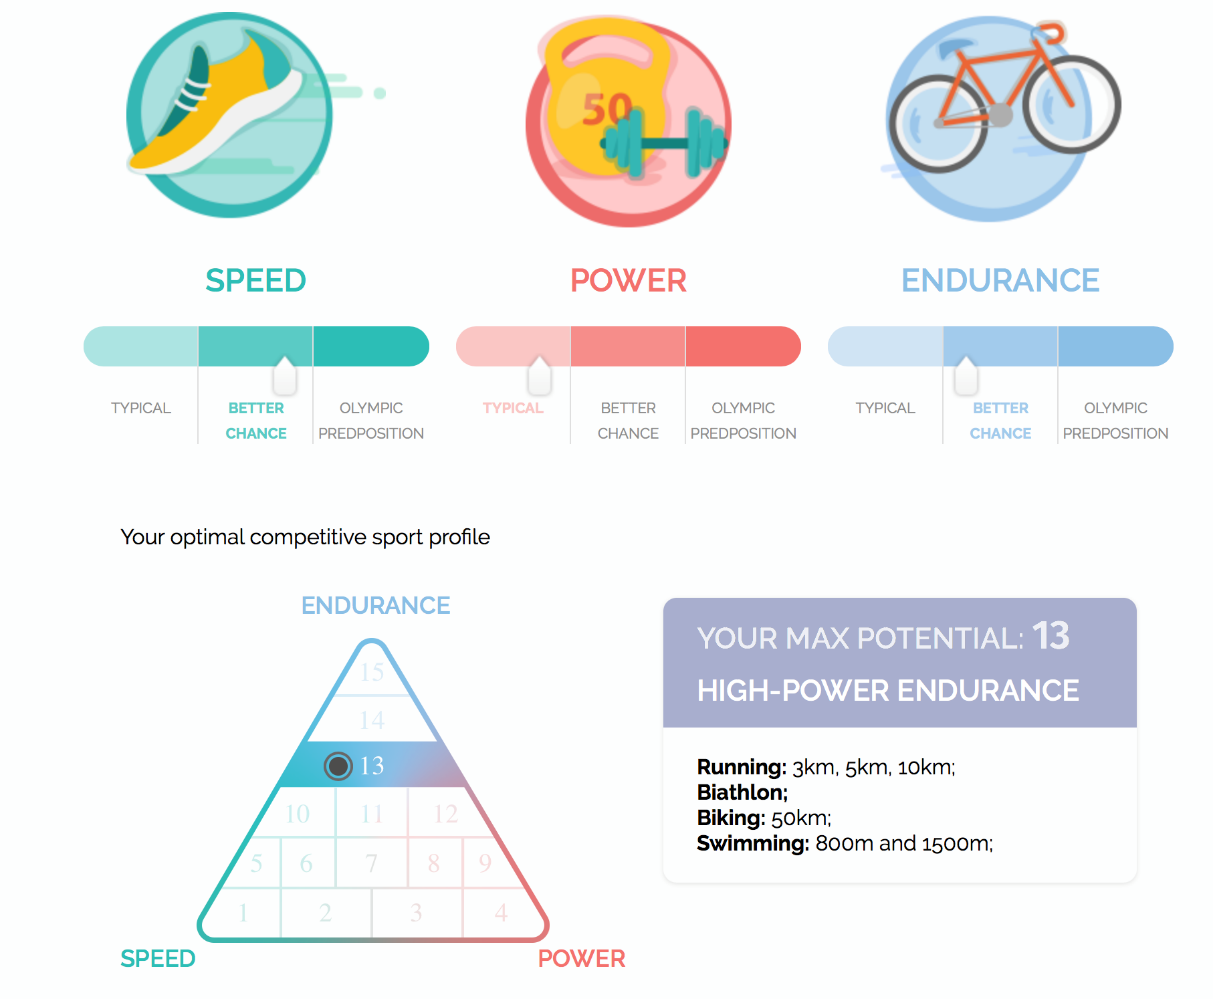 DNA Fitness Coach app sample results